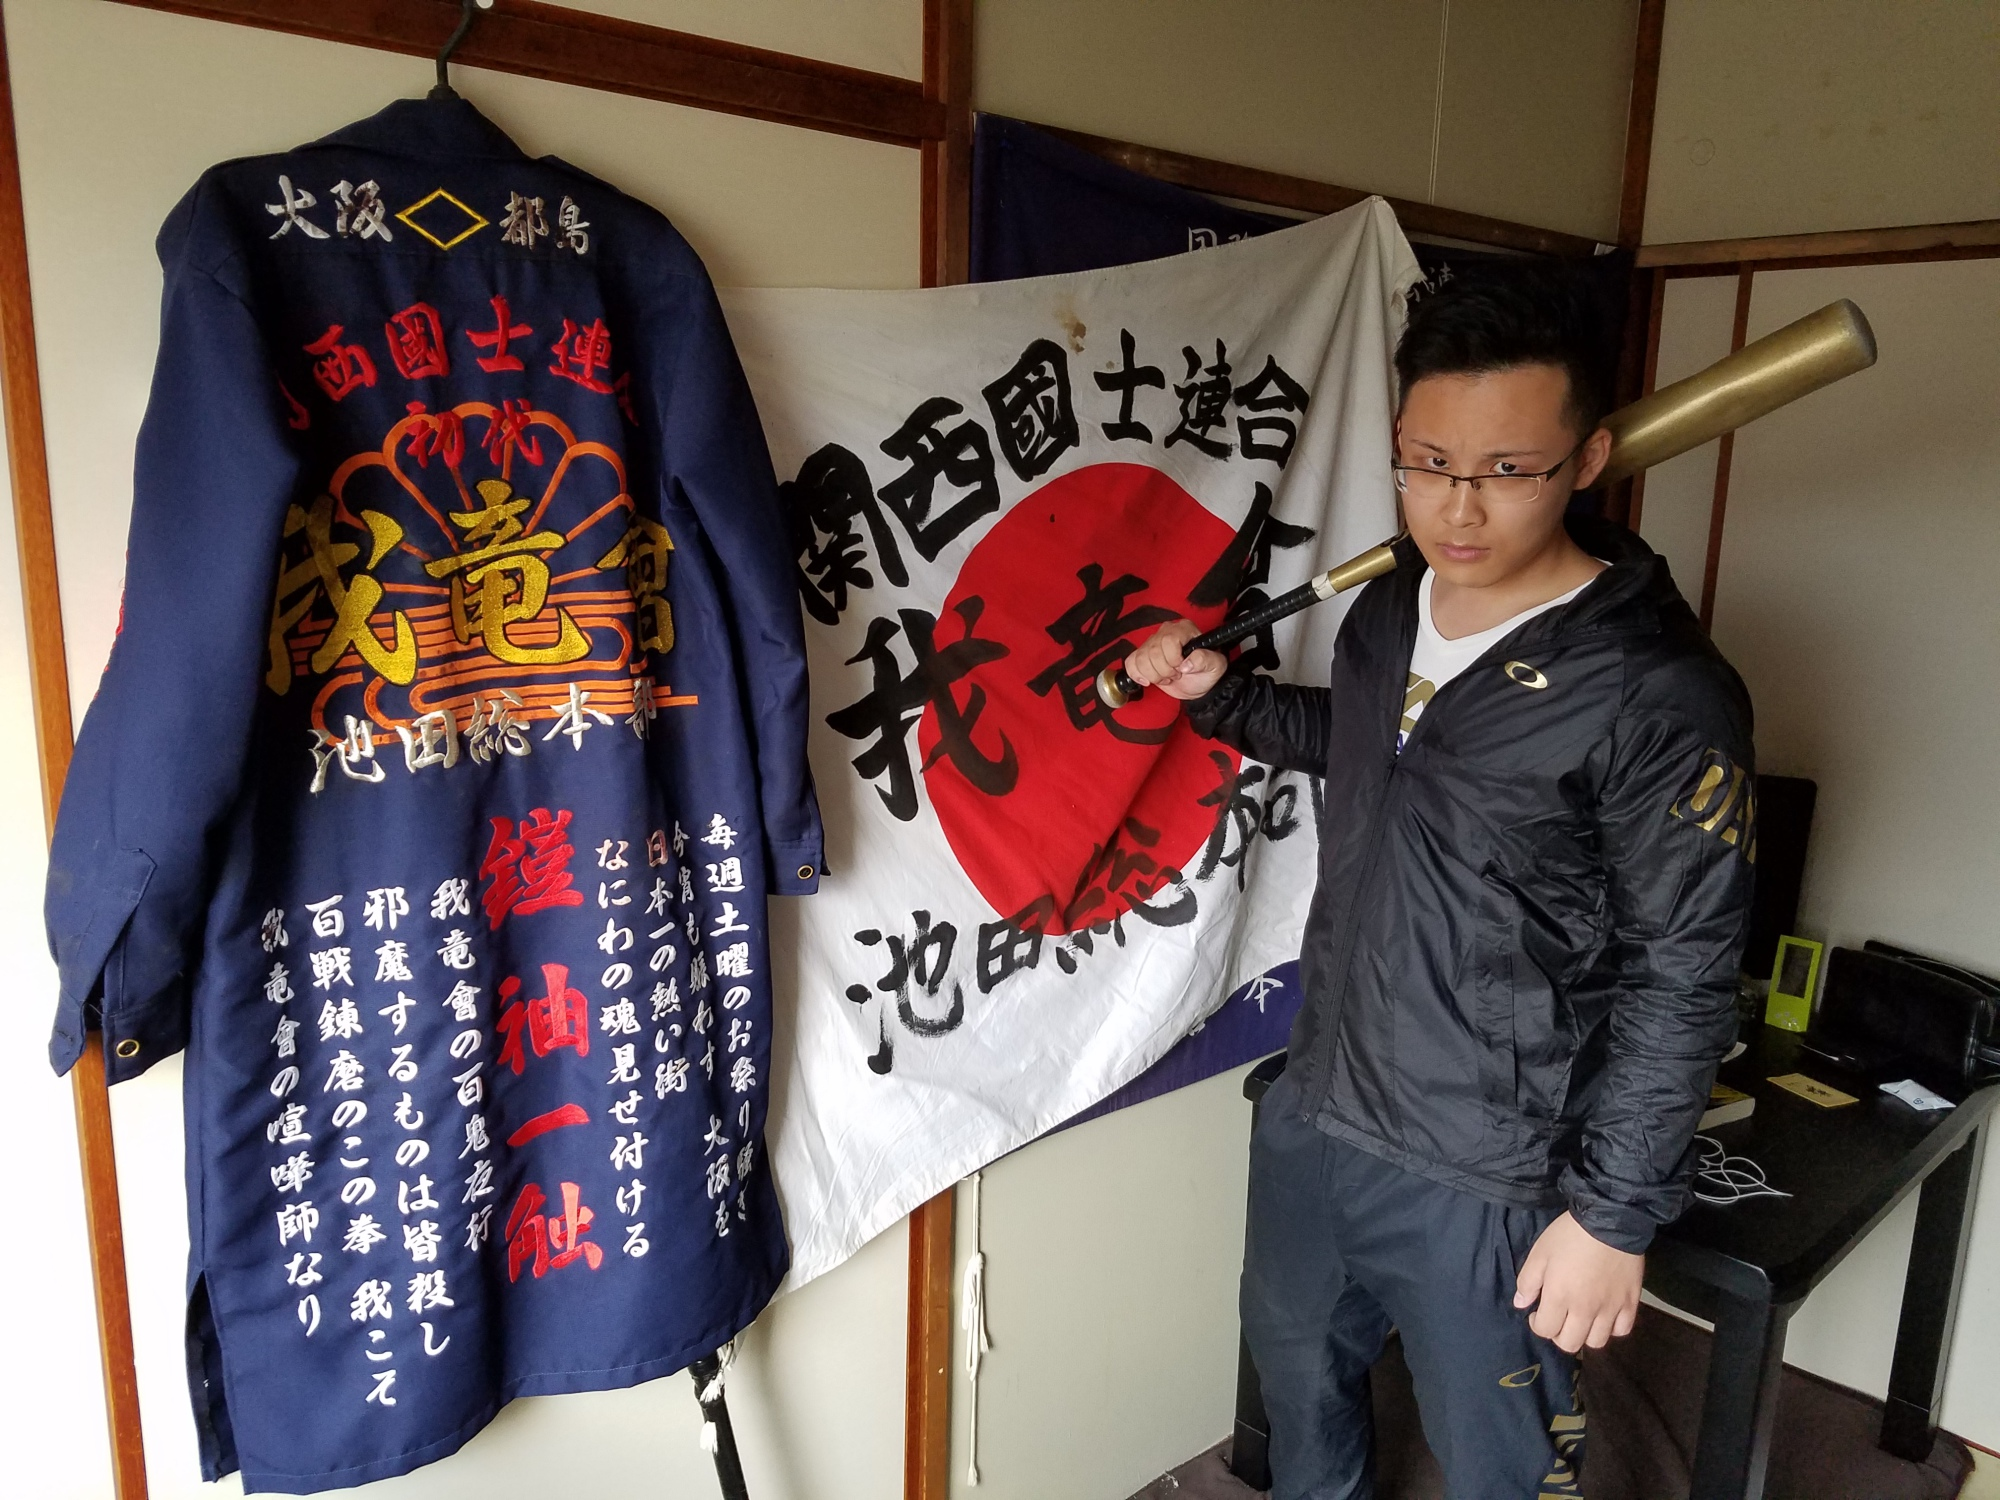 Former 'bosozoku' biker Shotaro Nagasawa, 20, poses at his home in Osaka on Nov. 6. Embroidered on his 'tokkofuku' fighting jacket is a four-letter slogan that reads 'gaishu isshoku,' meaning 'vanquish your enemy with a single blow.' | TOMOHIRO OSAKI